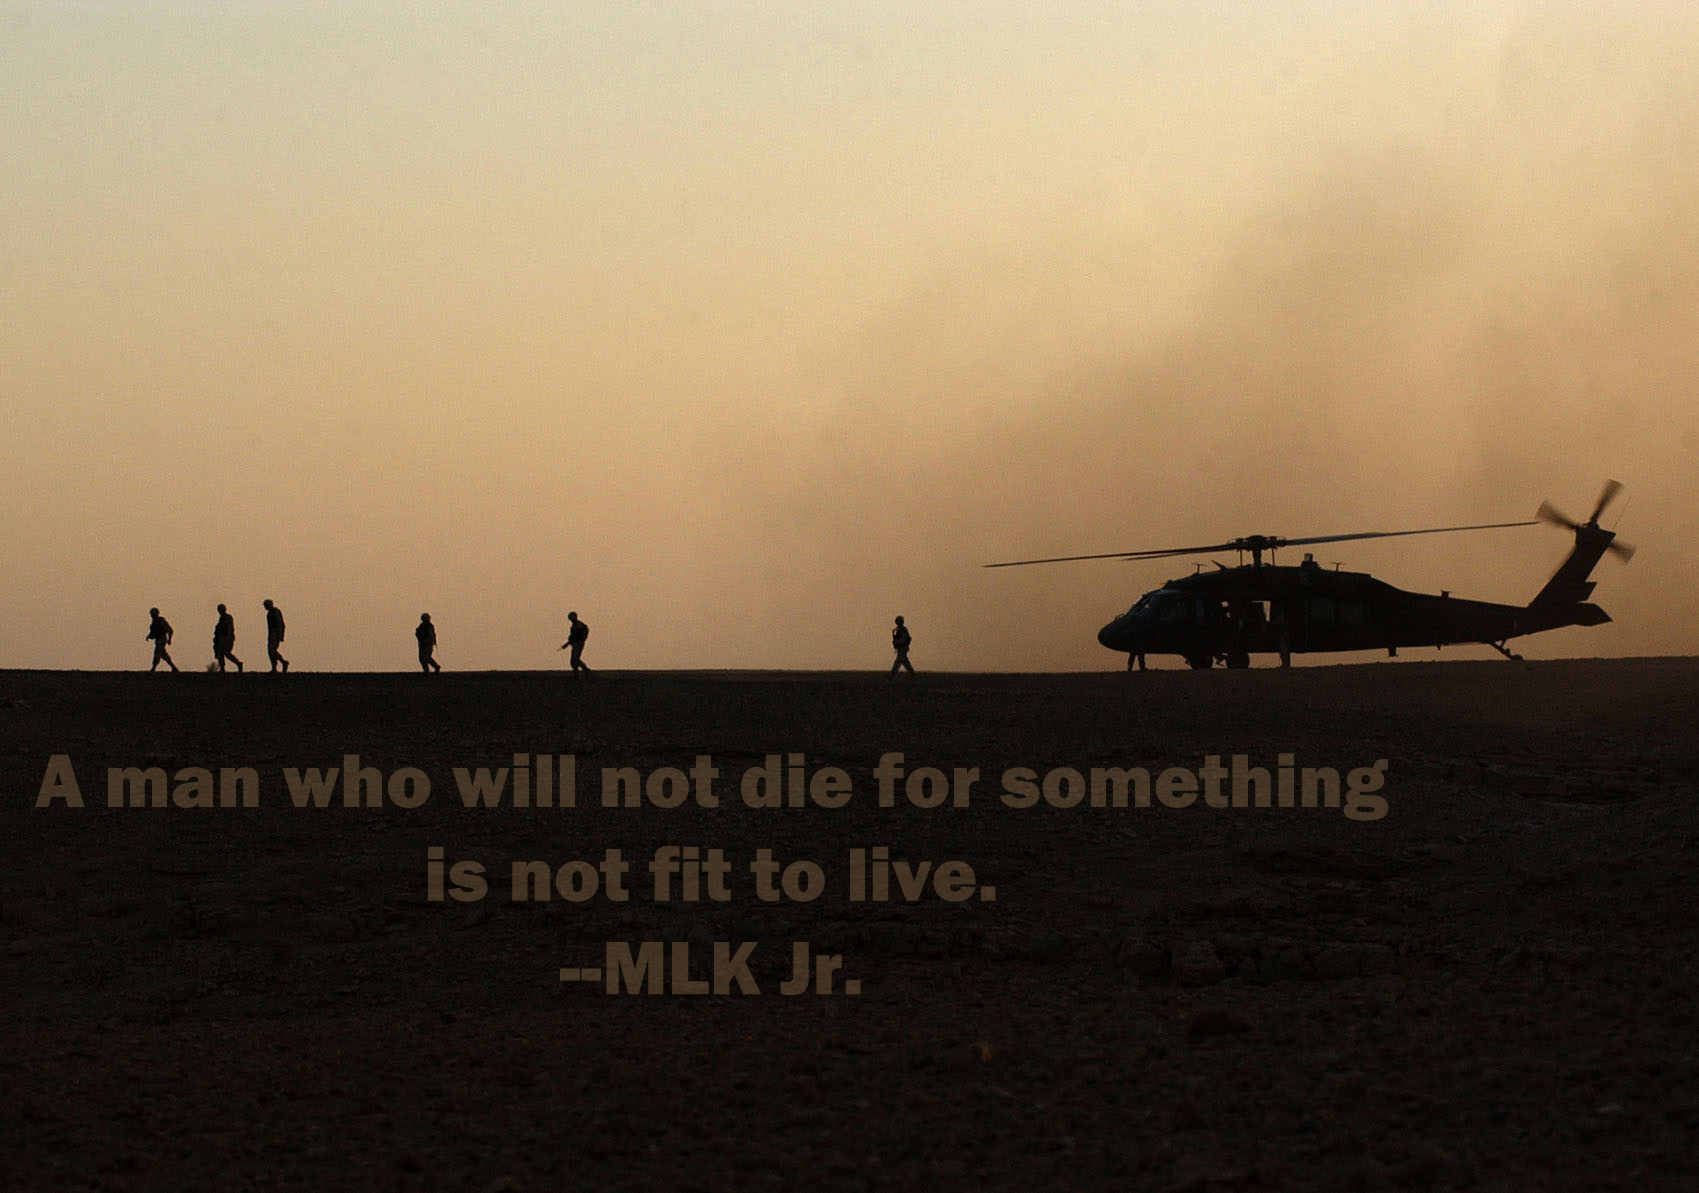 A Man Who Will Not Die For Something Is Not Fit To Live